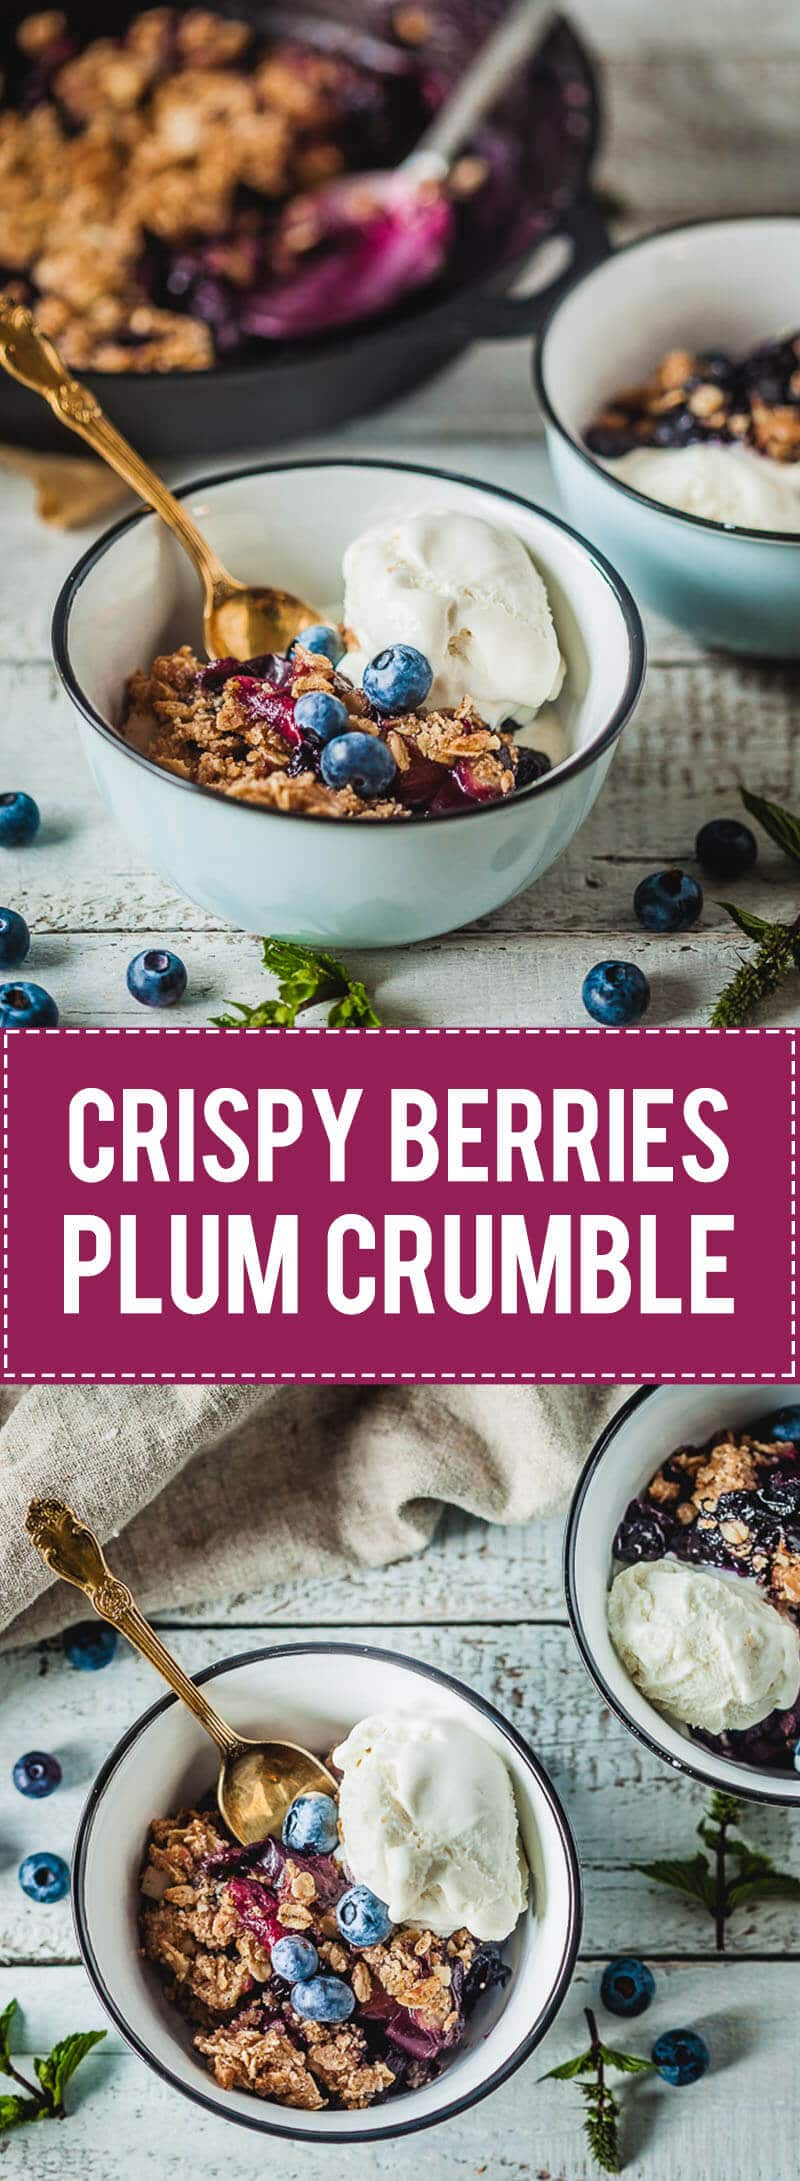 Crispy Berries and Plum Crumble is an easy and delicious dessert to make that makes excellent use of fruit you have rolling around.